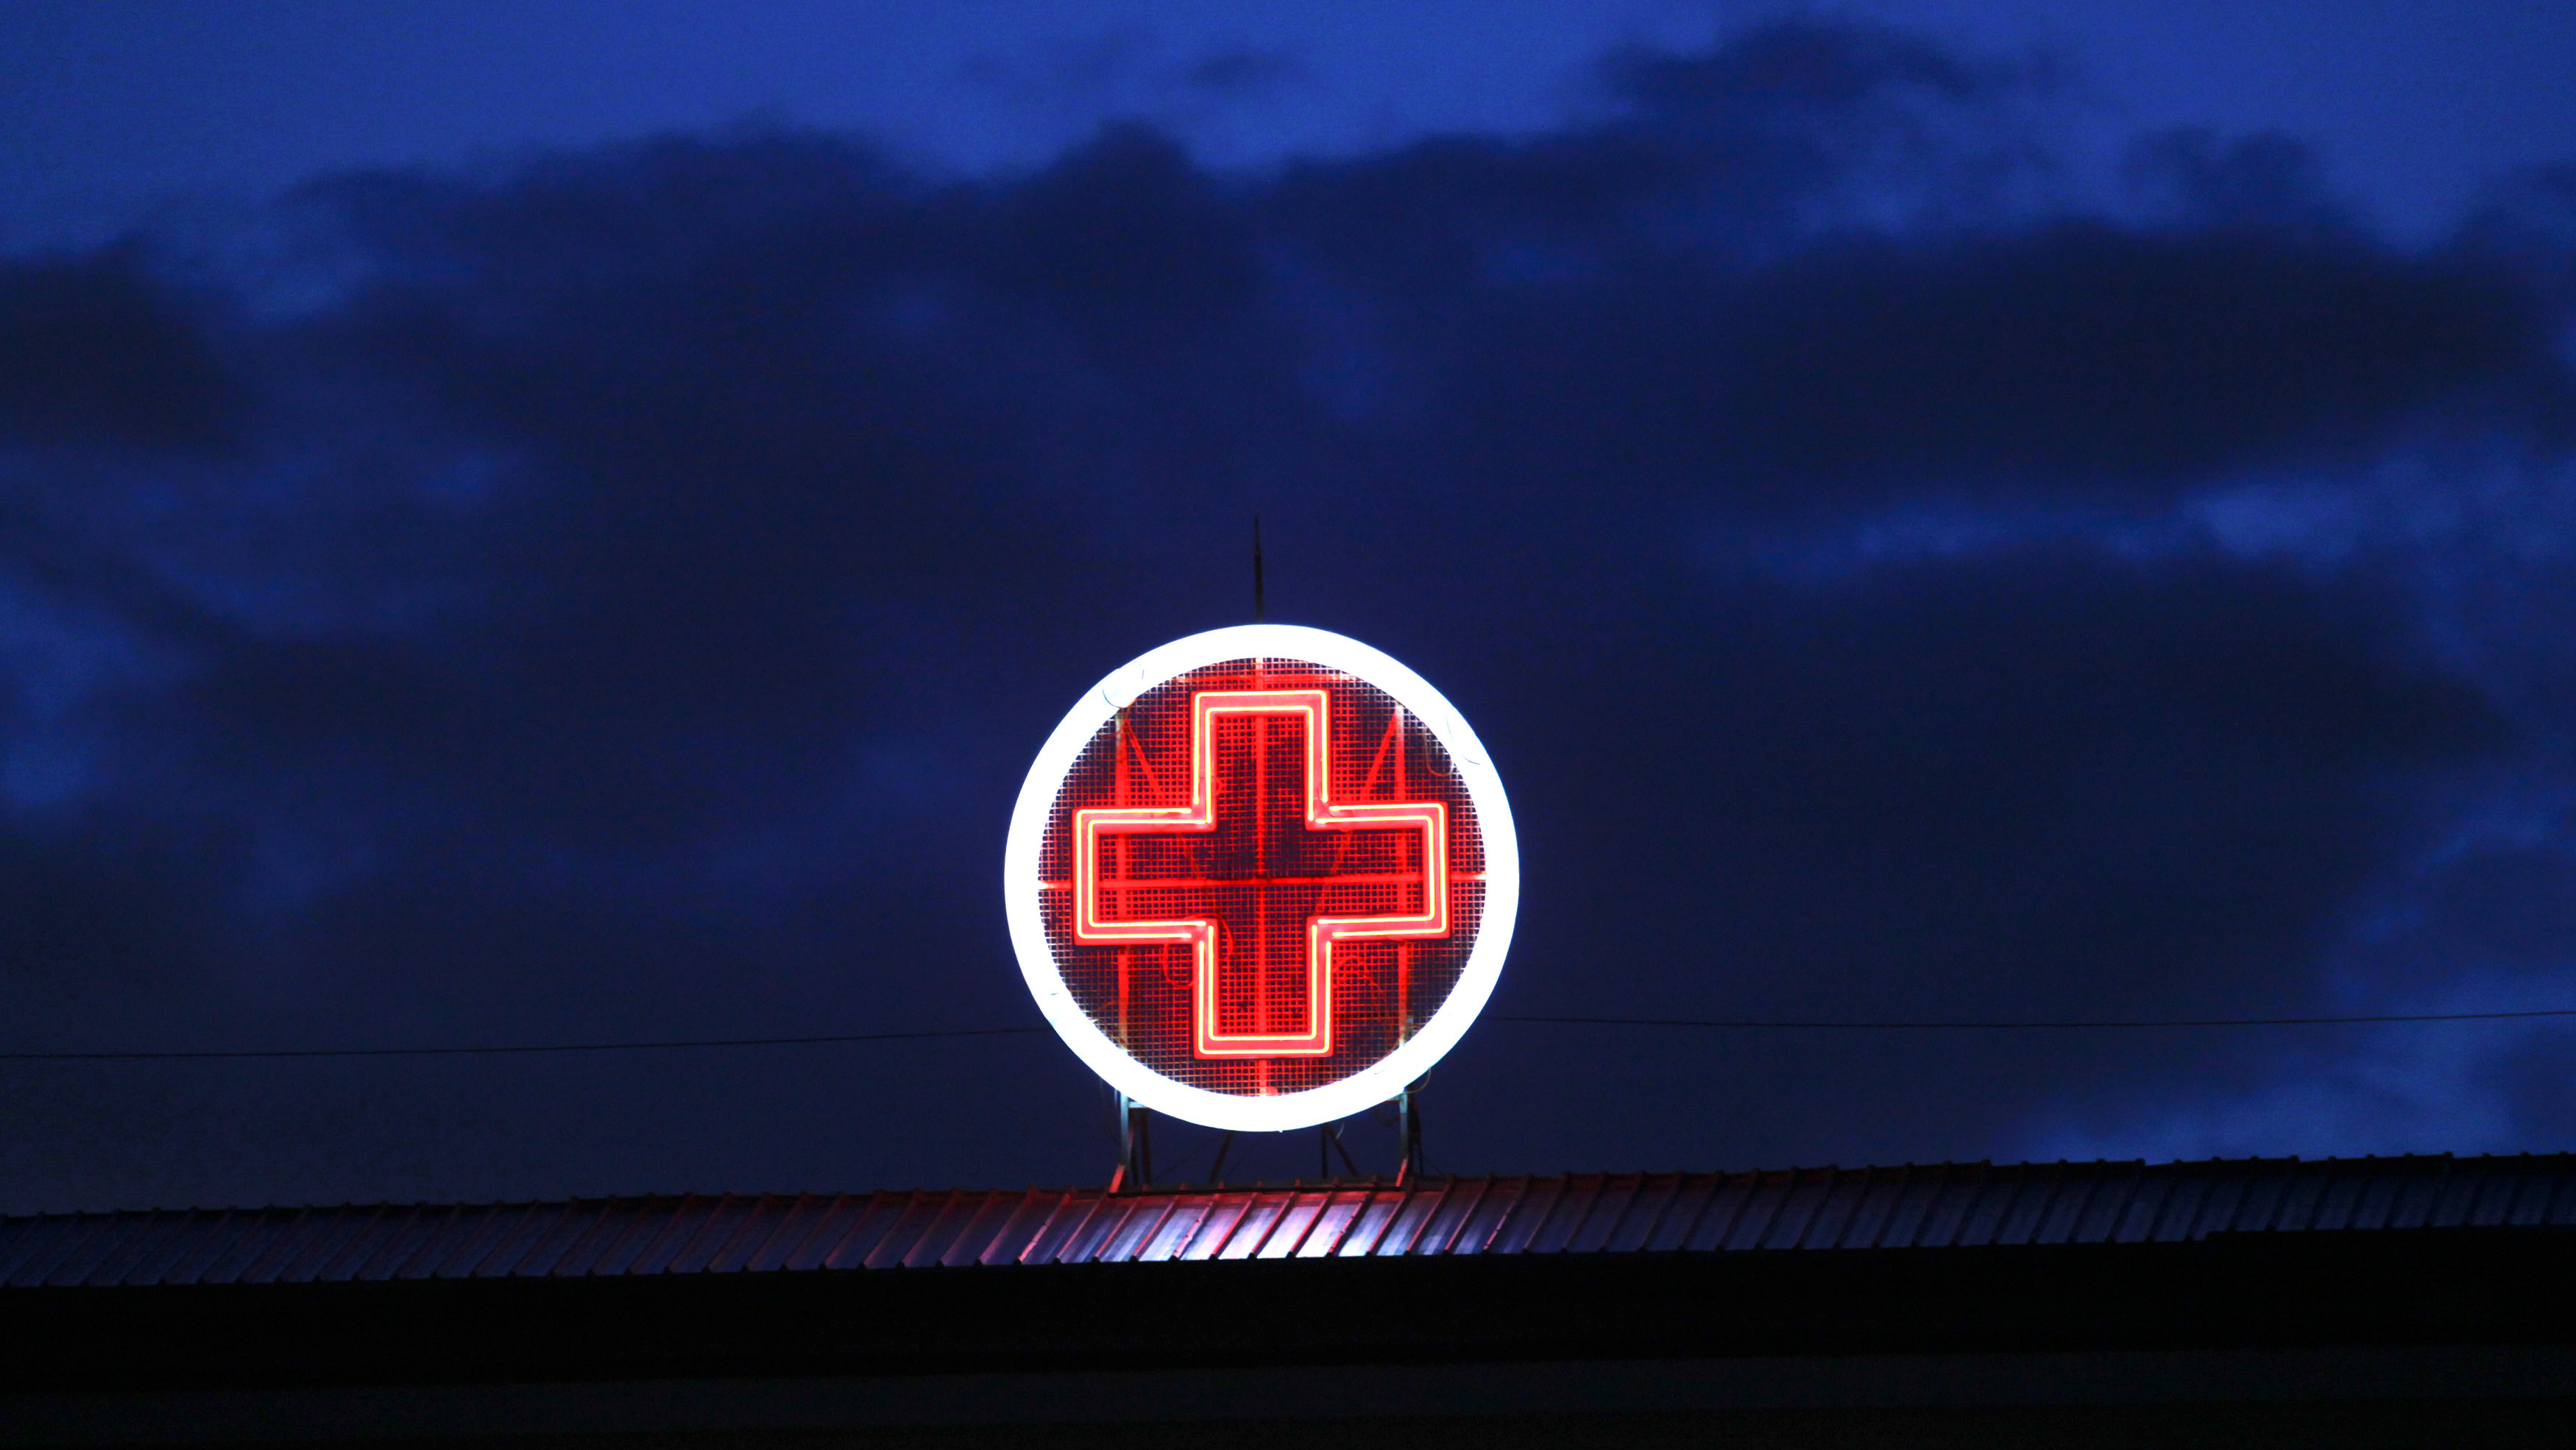 A red neon cross is seen on the rooftop of the Evangelismos State General Hospital in Athens May 30, 2012. Greece's rundown state hospitals are cutting off vital drugs, limiting non-urgent operations and rationing even basic medical materials for exhausted doctors as a combination of economic crisis and political stalemate strangle health funding. With Greece now in its fifth year of deep recession, trapped under Europe's biggest public debt burden and dependent on international help to keep paying its bills, the effects are starting to bite deeply into vital services. Picture taken May 30, 2012.